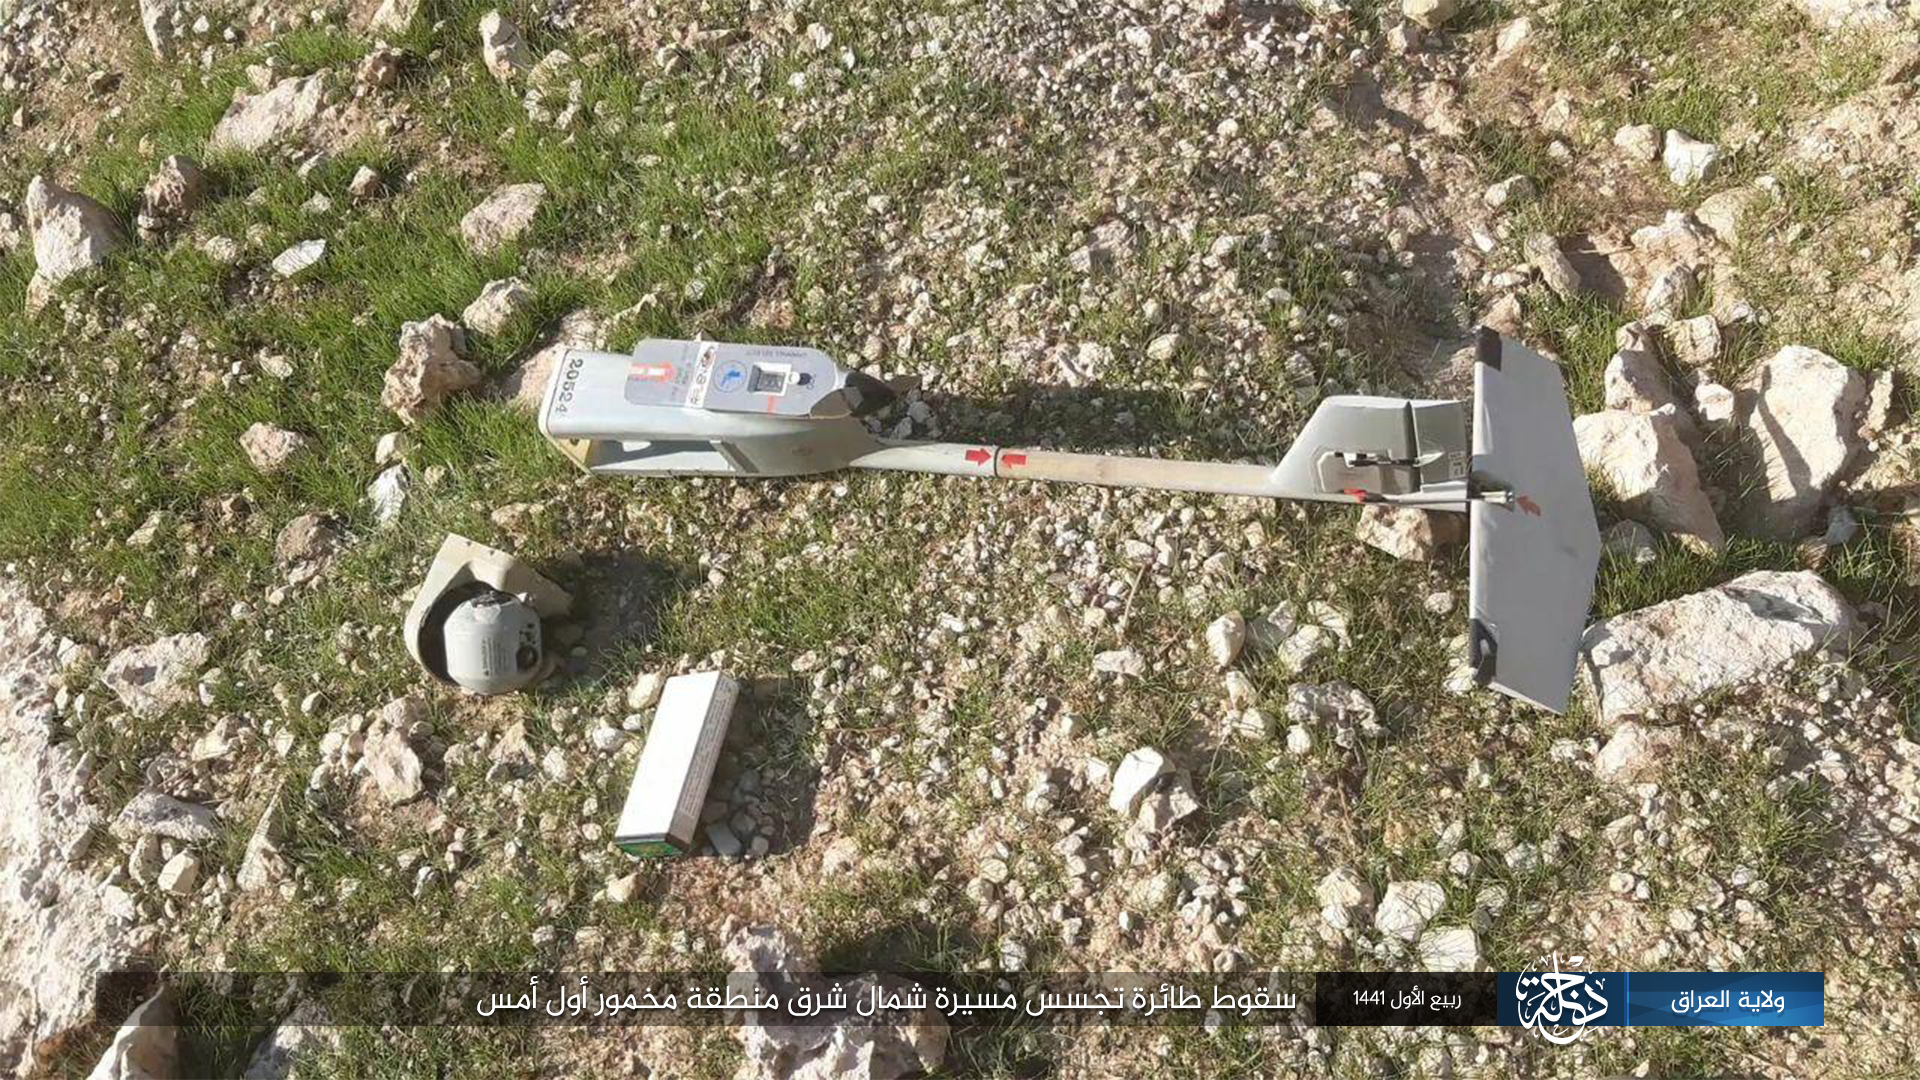 Photo: ISIS Cells Shot Down U.S.-Made Drone In Western Iraq